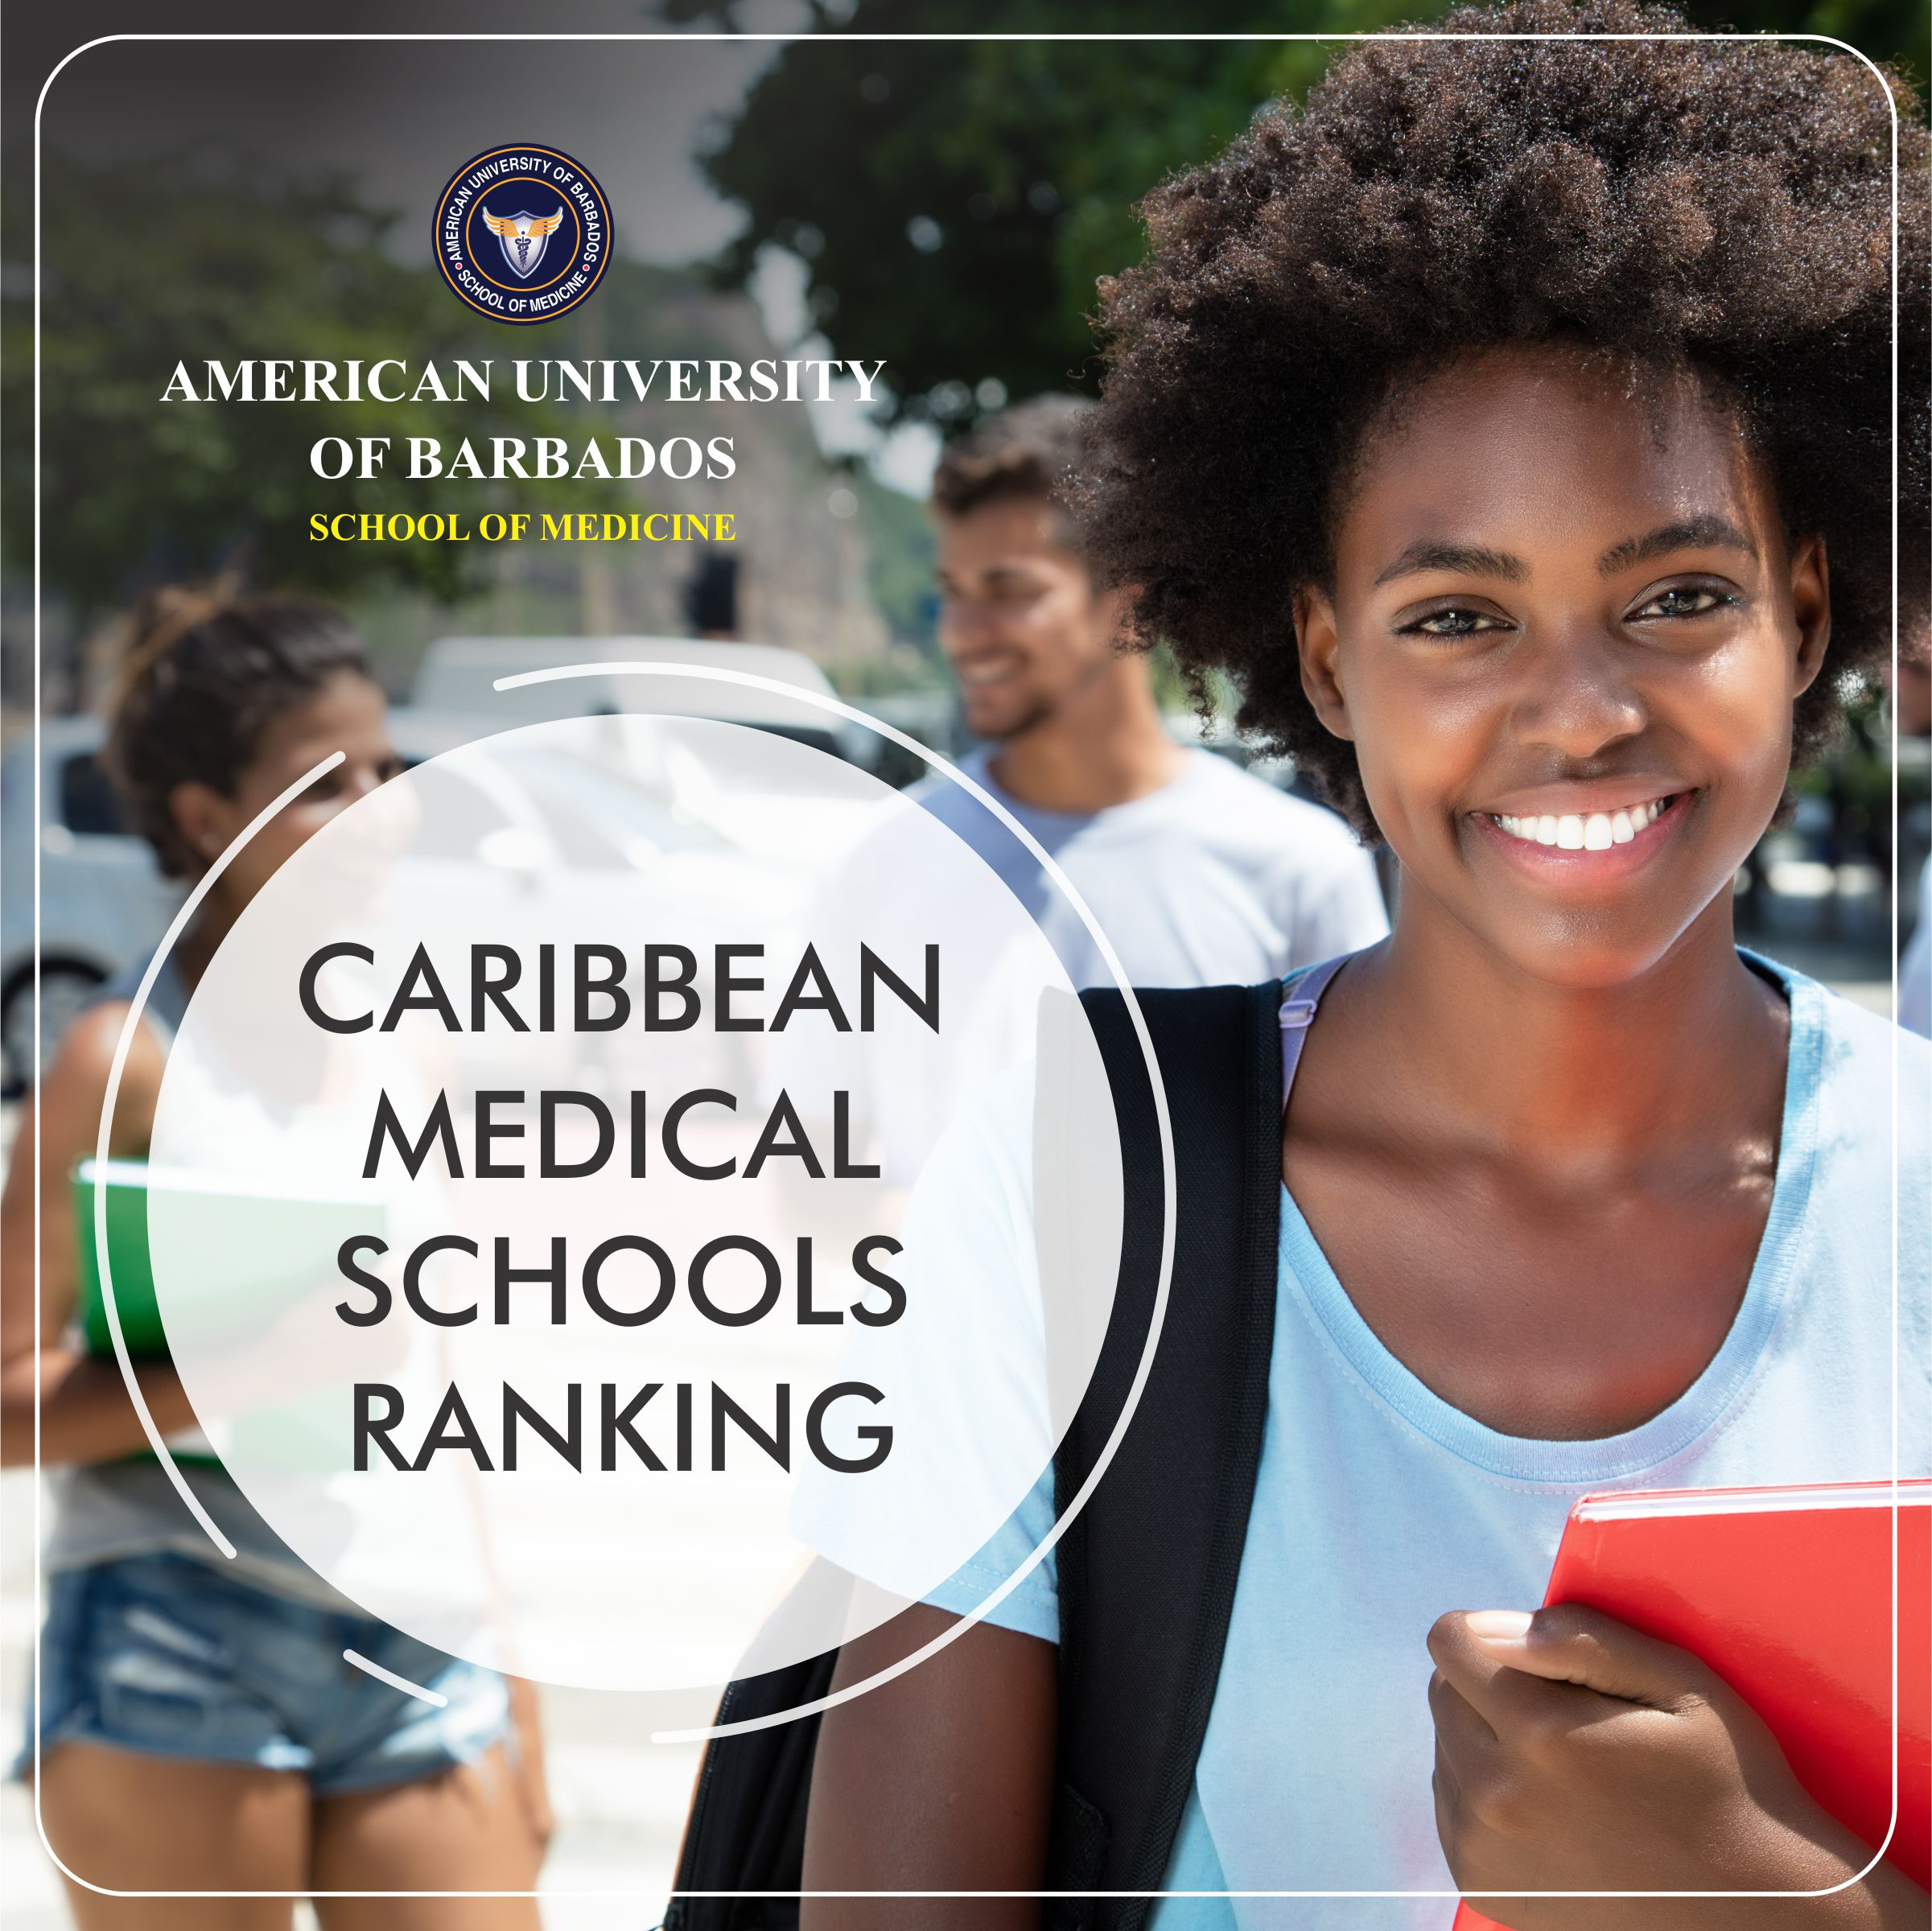 Top Ranking Things for Caribbean Medical Schools